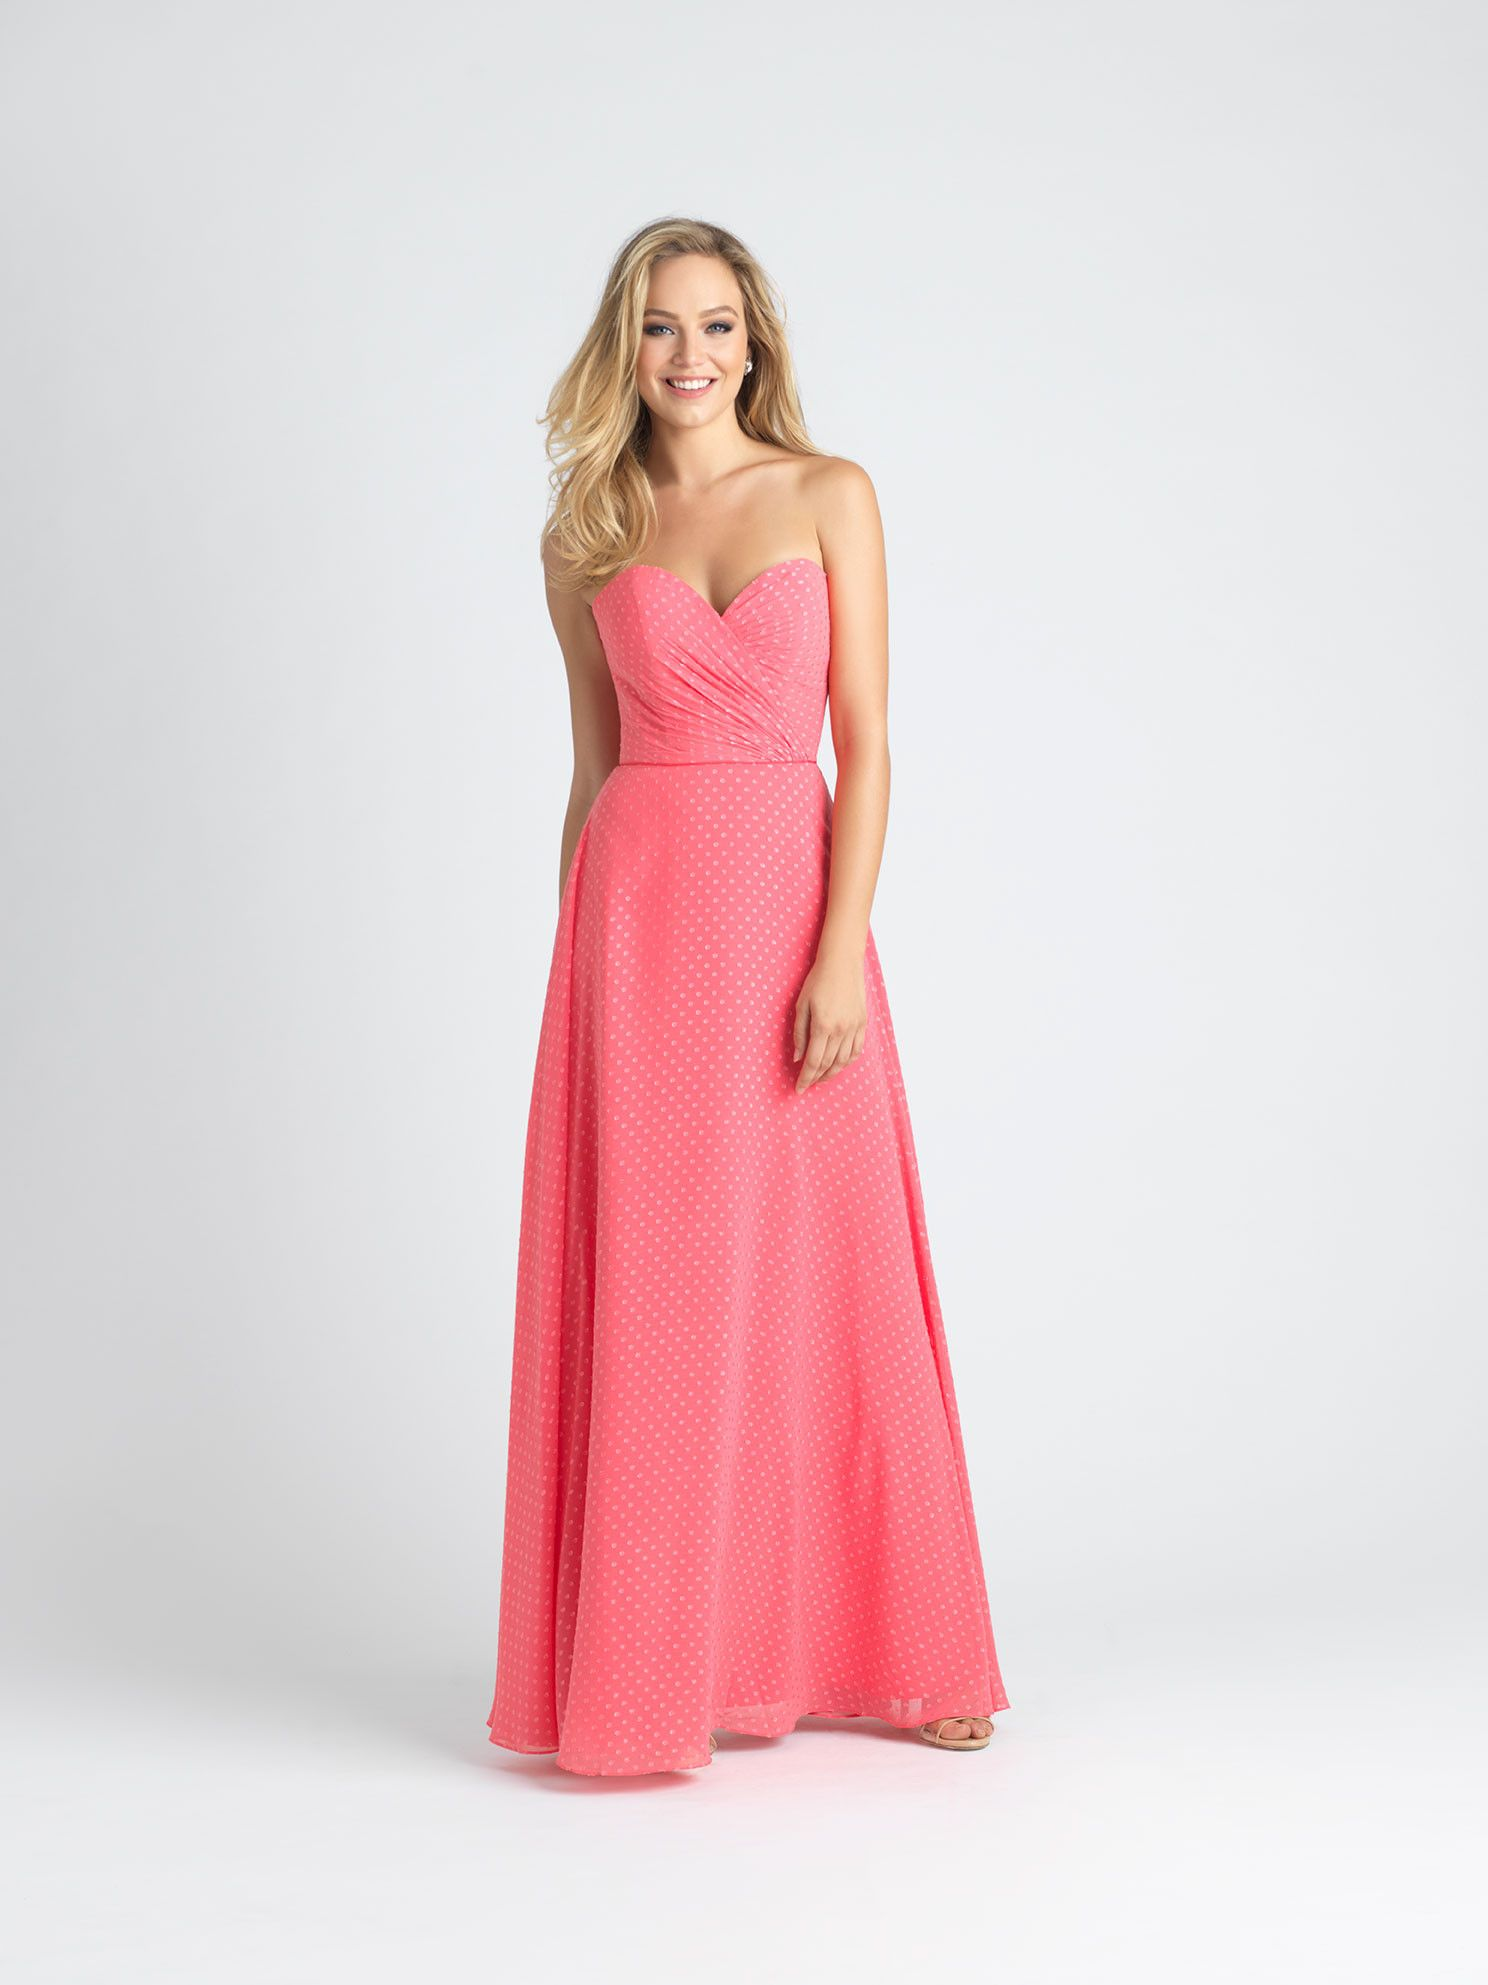 Allure Bridesmaid 1540 | Products | Pinterest